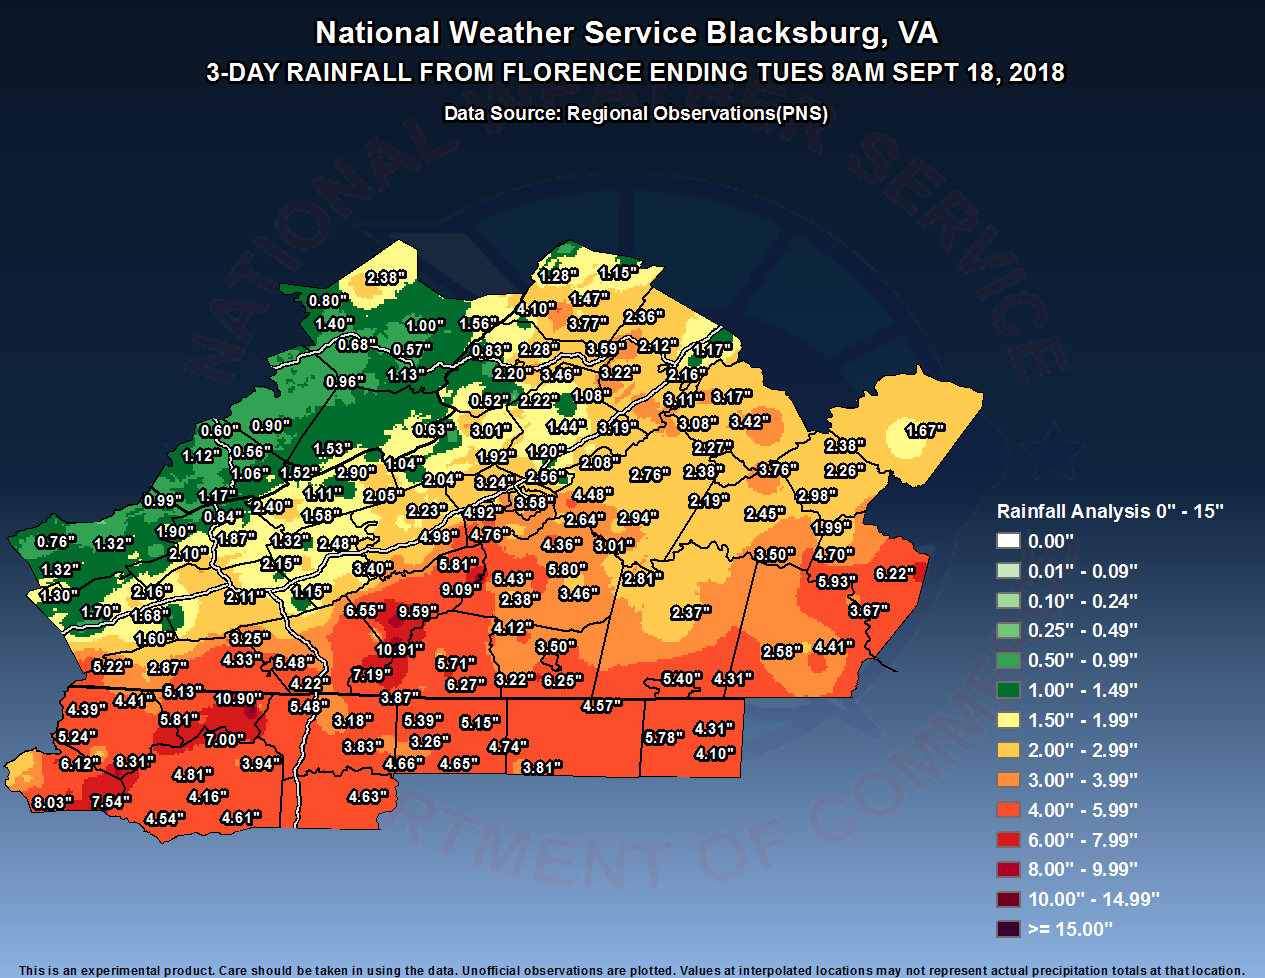 Event Summary for Florence For NWS Blacksburg's Area